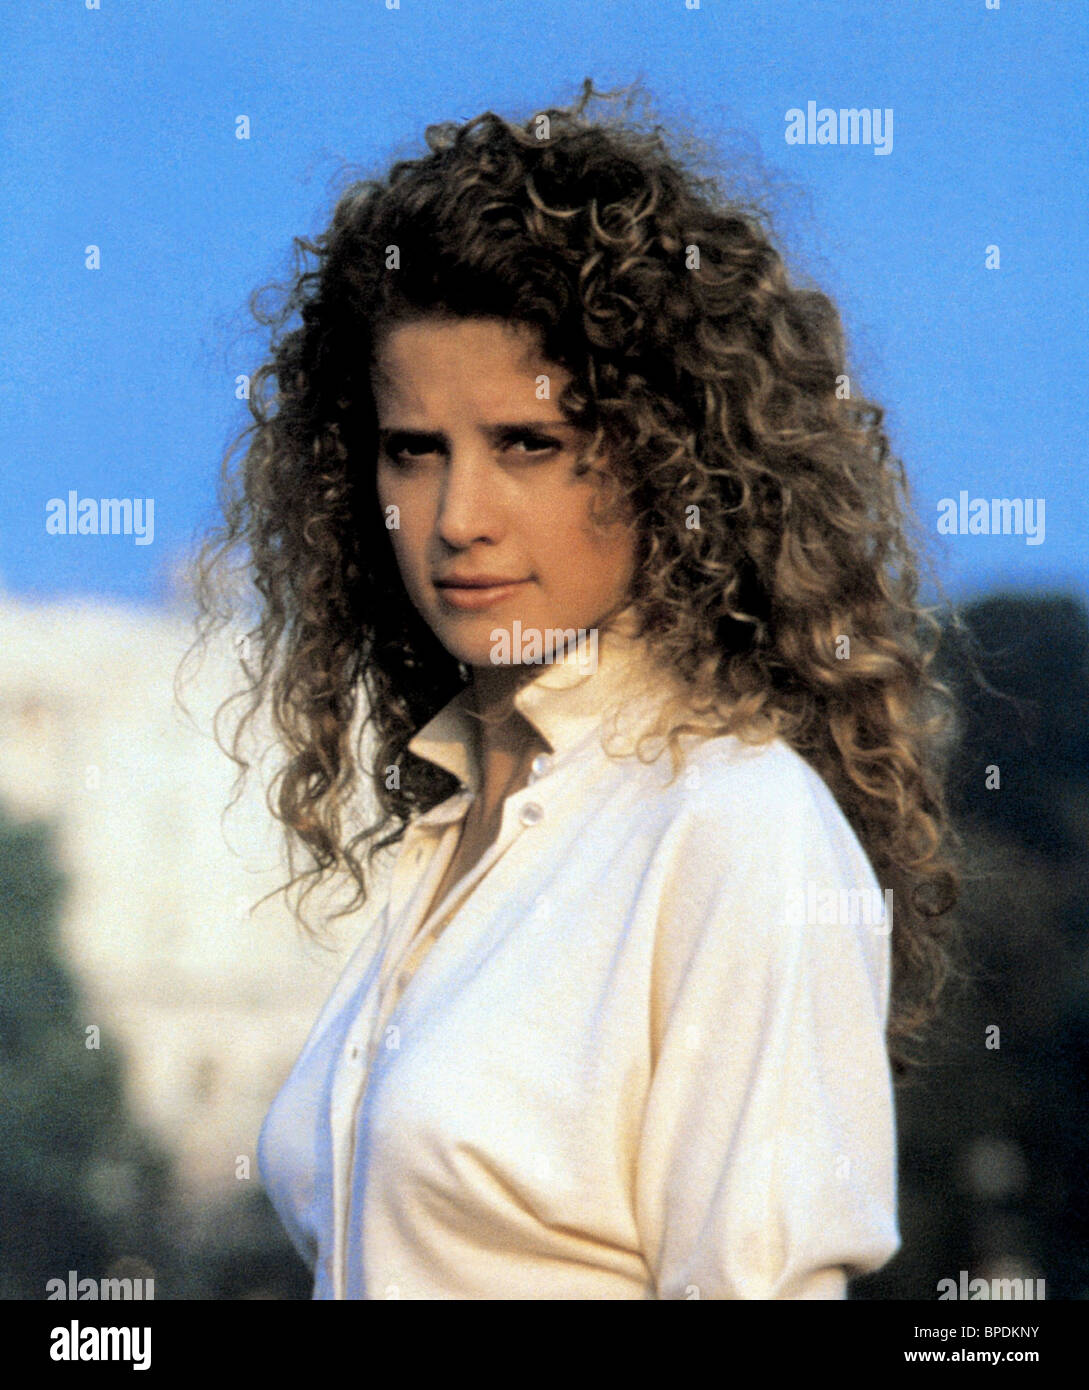 nancy travis loose cannons 1990 stock photo 31033687 alamy. Black Bedroom Furniture Sets. Home Design Ideas